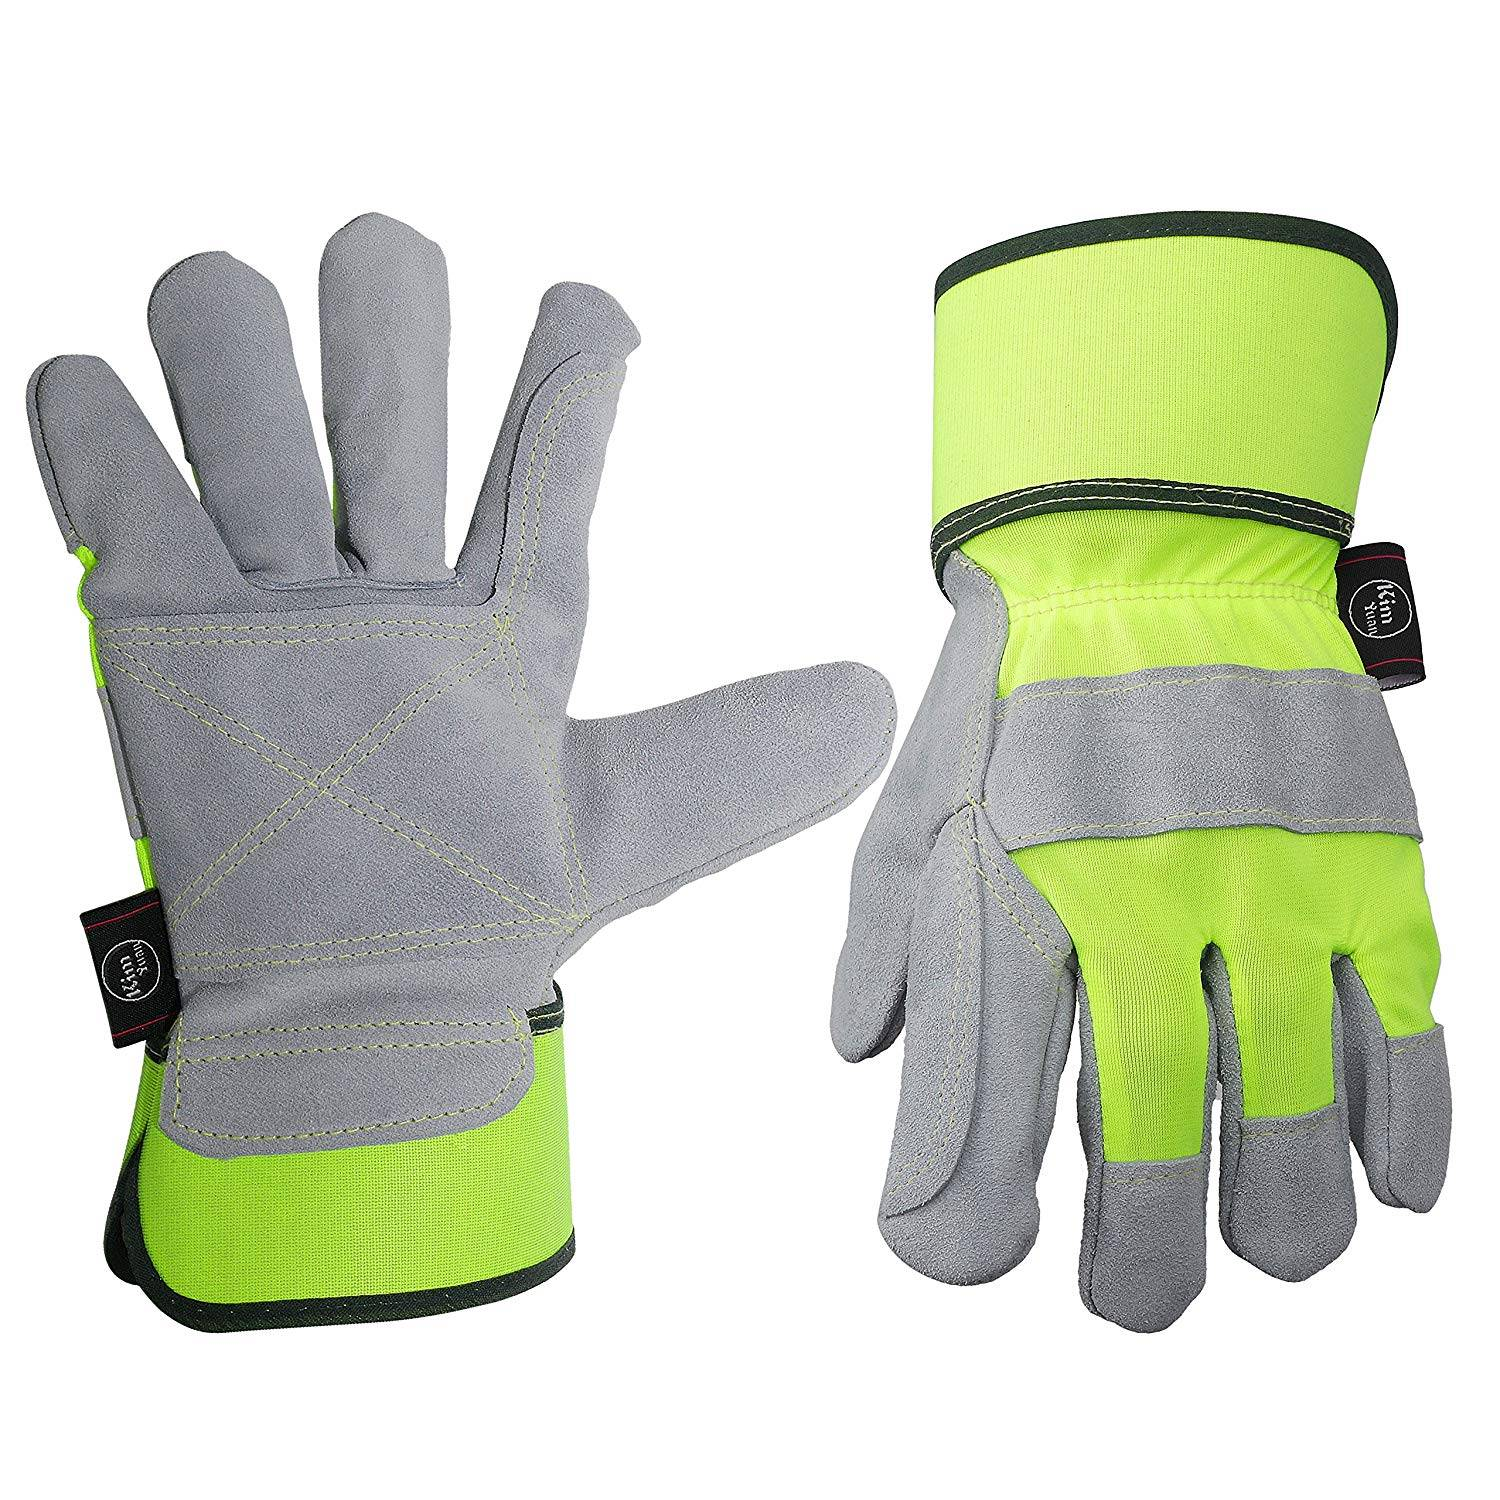 Leather Work Gloves, Perfect for Truck Driving/Yard Work/Gardening/Construction/Warehouse/Motorcycle/Heavy Duty Working, Men&Women